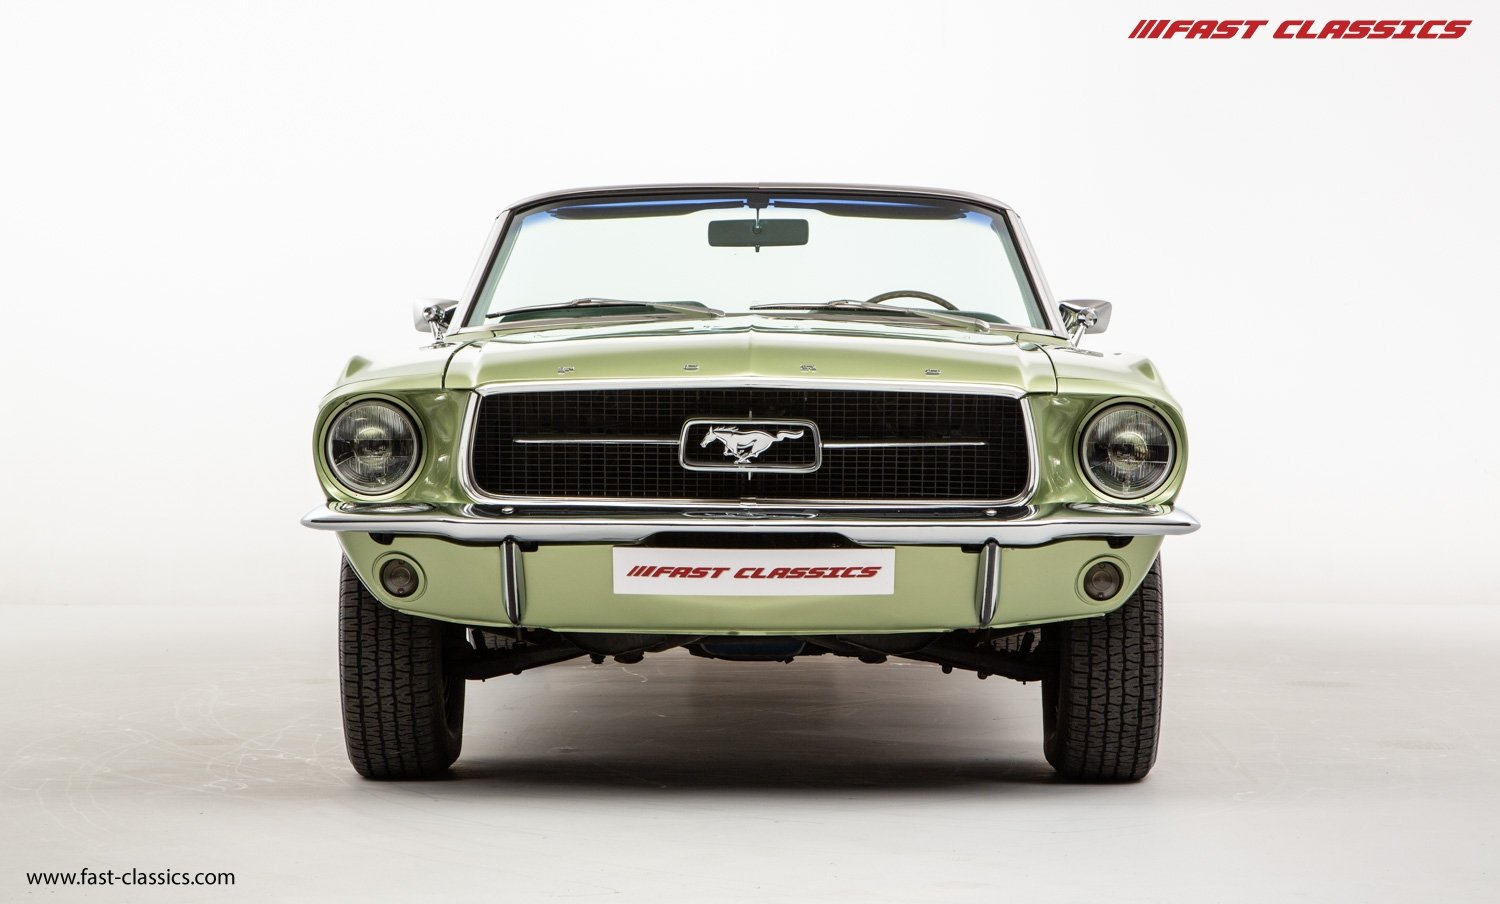 FORD MUSTANG CONVERTIBLE // 1967 FACTORY 4-SPEED MANUAL For Sale (picture 5 of 23)